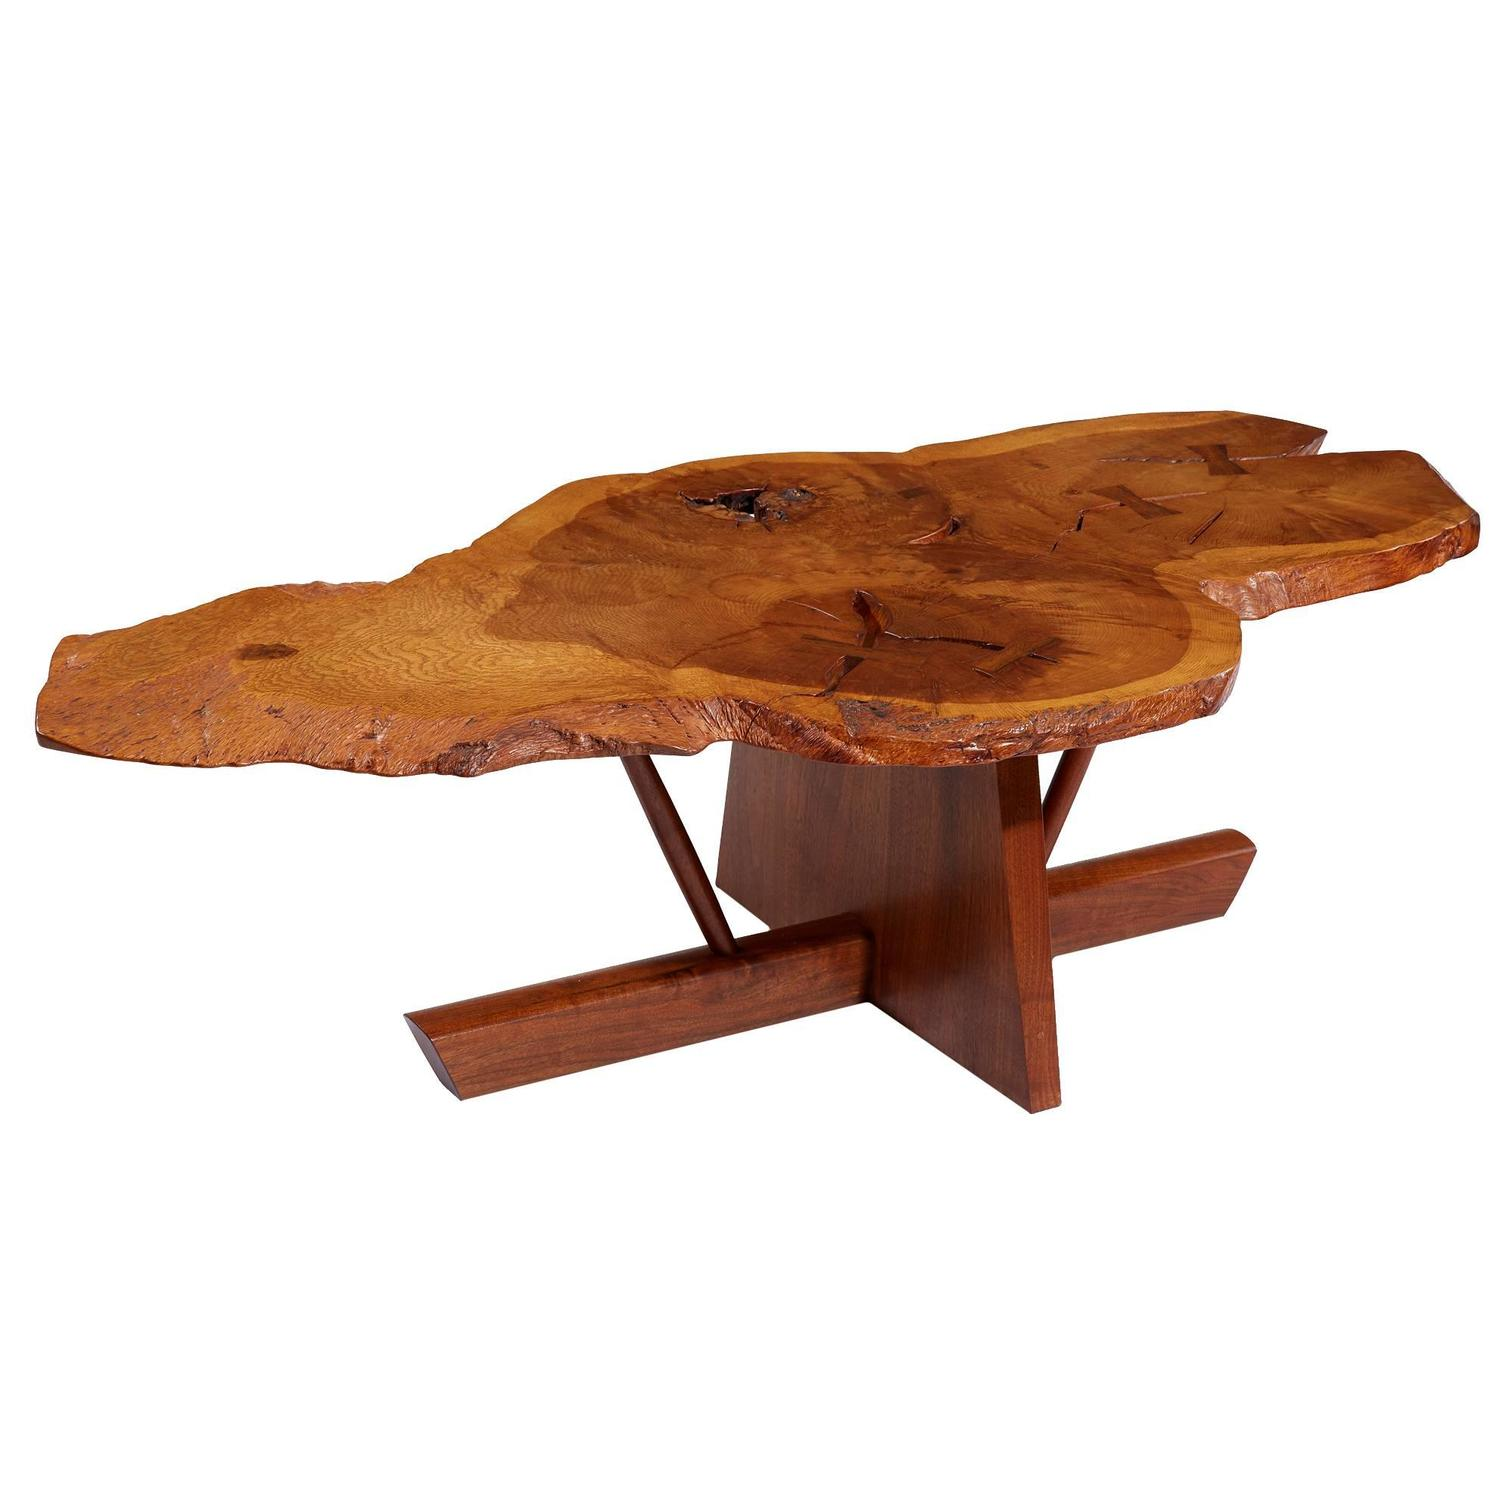 Delicieux George And Mira Nakashima English Oak, Walnut And Hickory Minguren Coffee  Table For Sale At 1stdibs